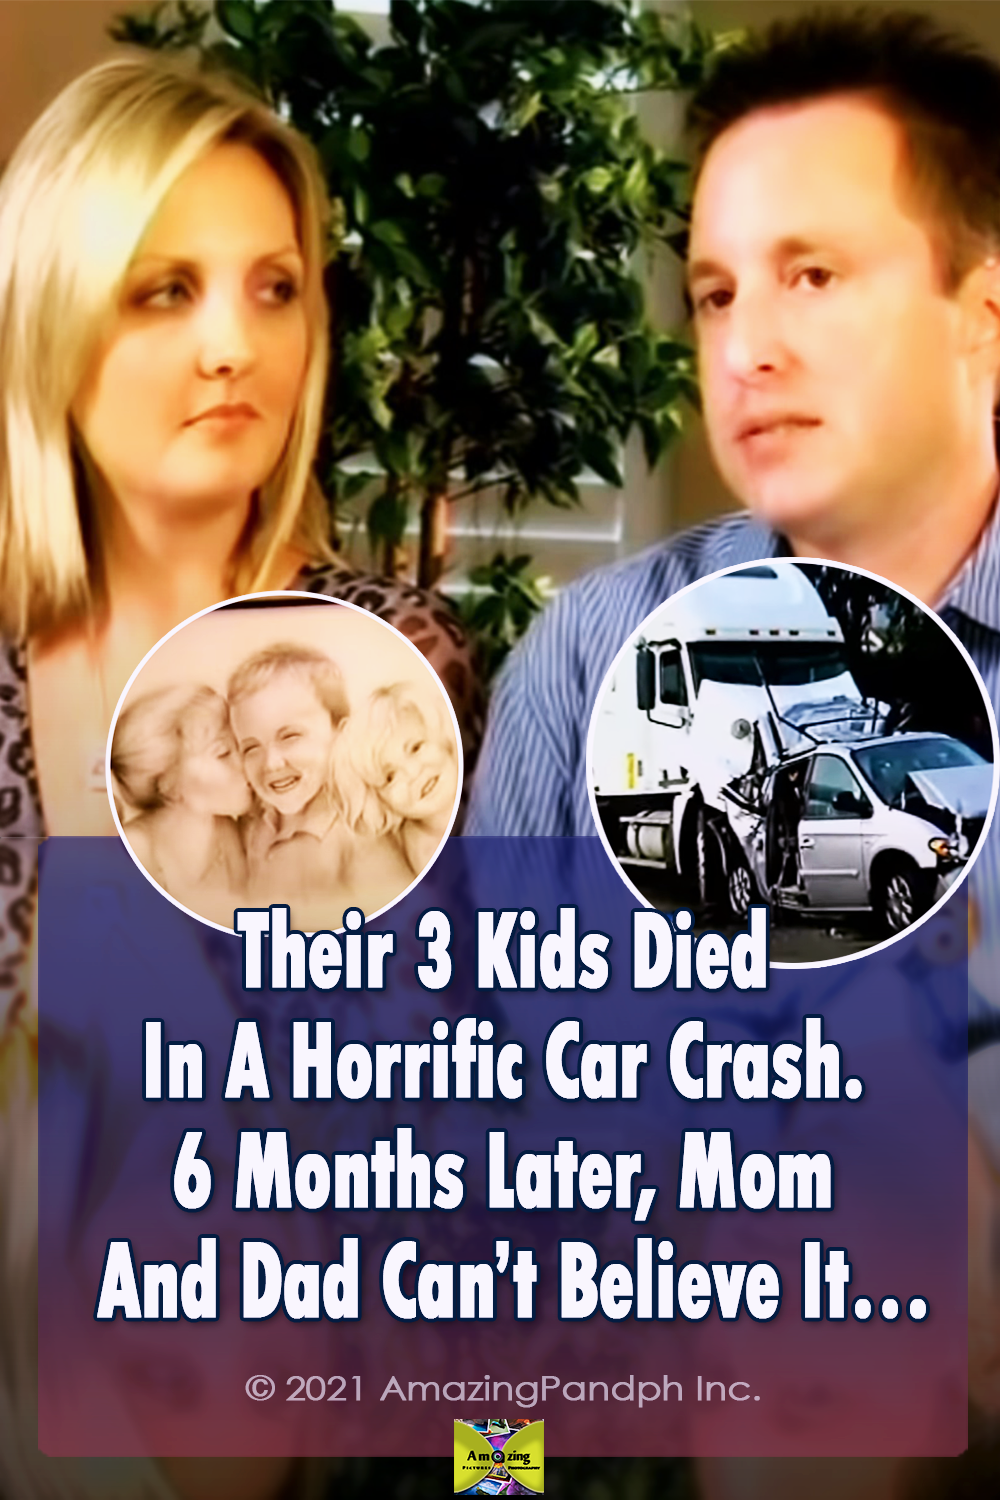 cars, accidents, stories, family, kids, sad,